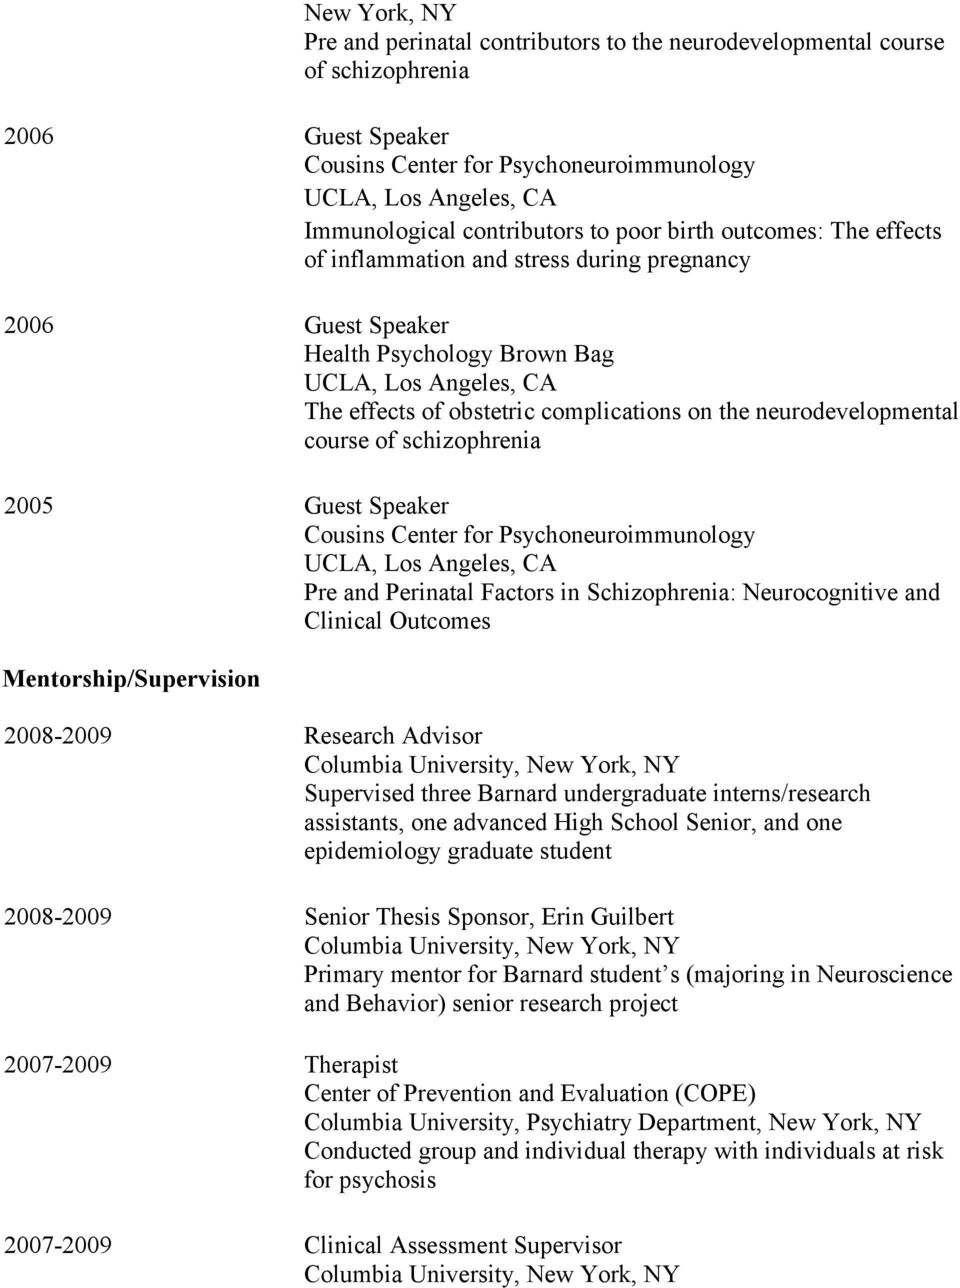 schizophrenia 2005 Guest Speaker Cousins Center for Psychoneuroimmunology Pre and Perinatal Factors in Schizophrenia: Neurocognitive and Clinical Outcomes Mentorship/Supervision 2008-2009 Research